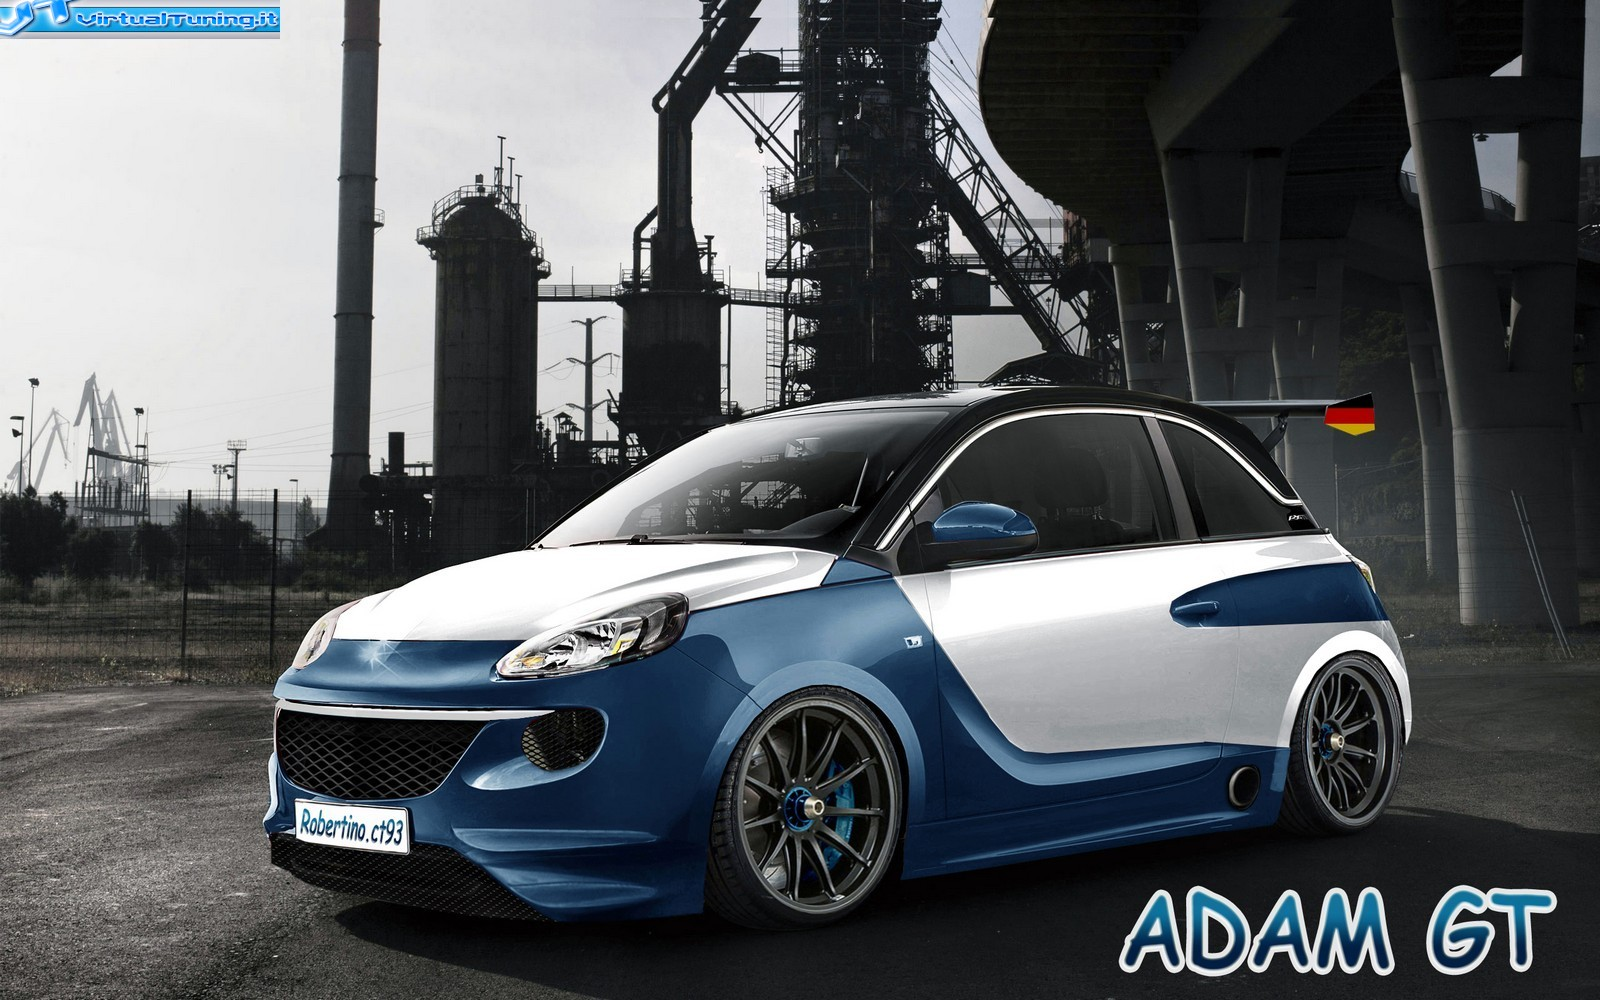 Opel Adam Gt By Robertino Ct93 Virtualtuning It